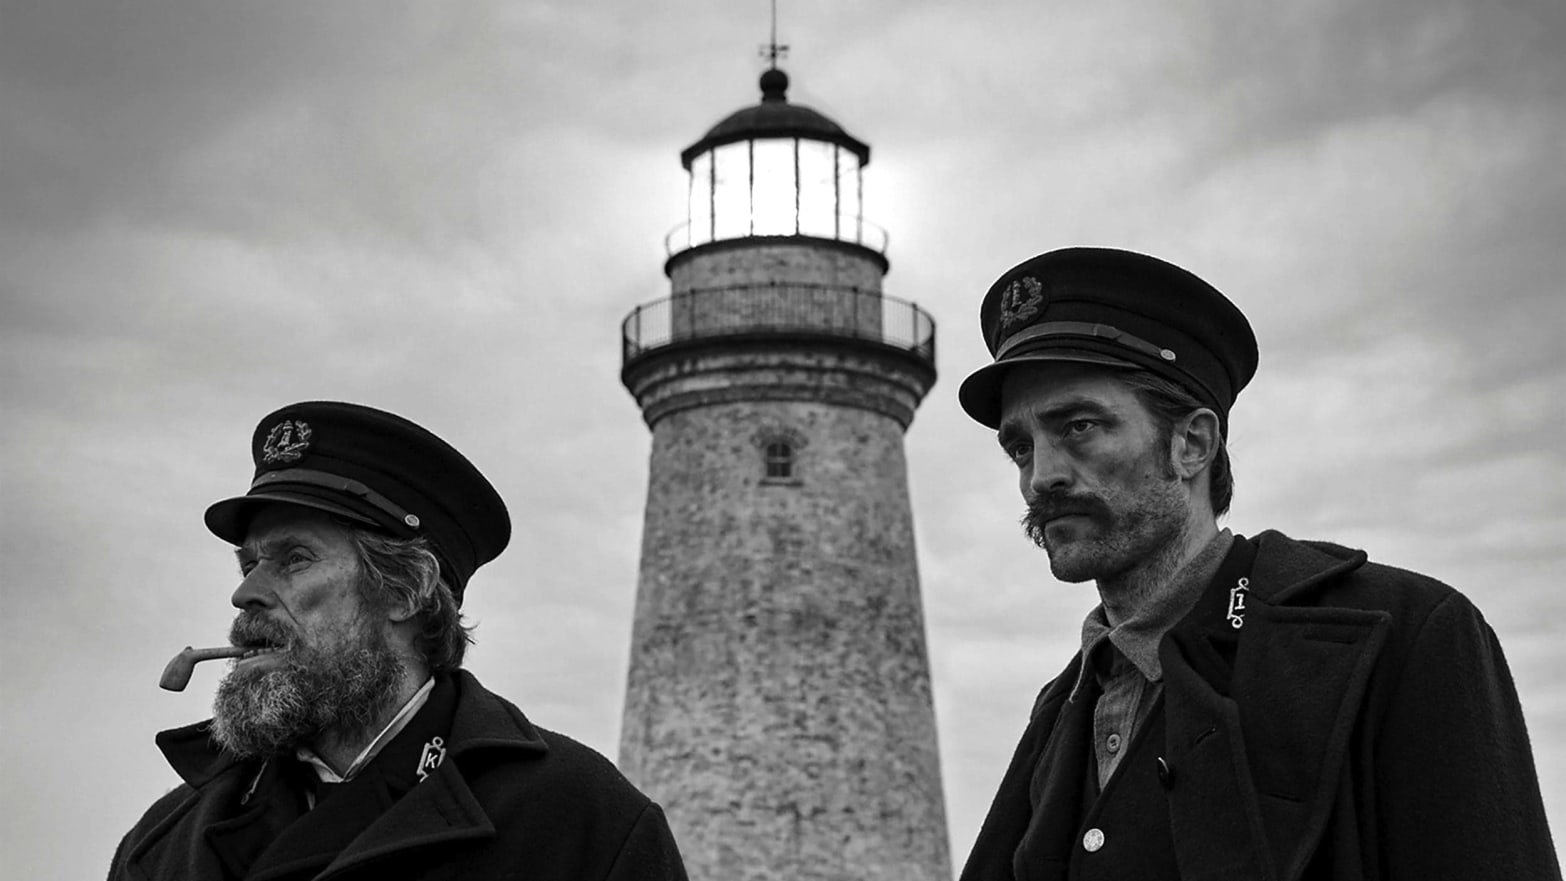 Robert Pattinson Loses His Damn Mind in Cannes Film Festival's 'The Lighthouse'